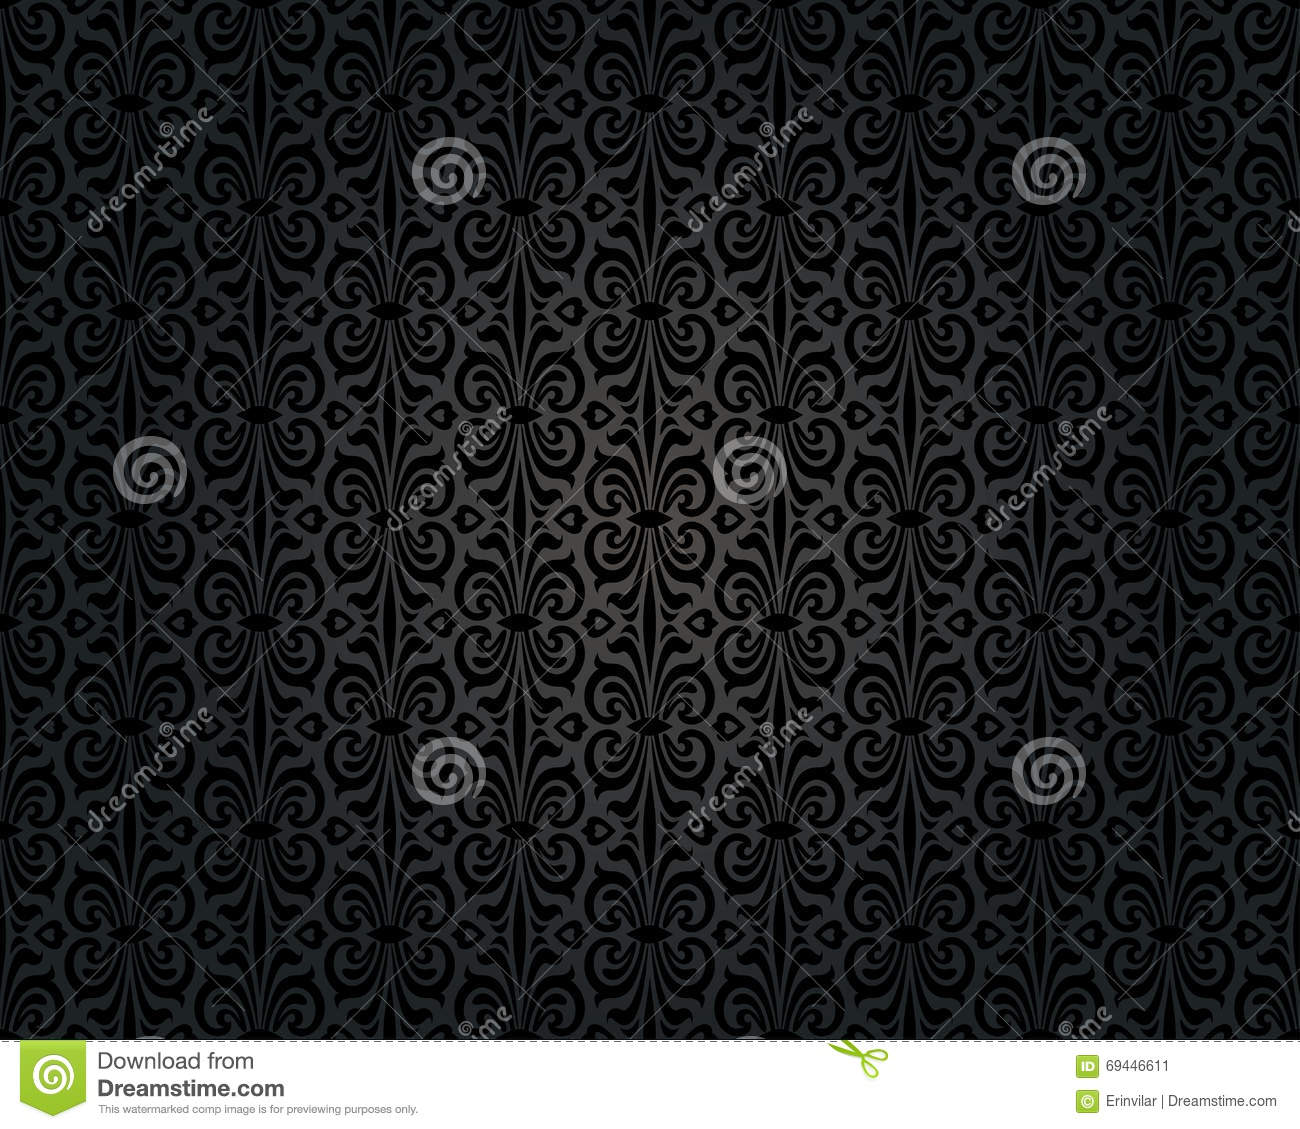 Black Vintage Wallpaper Background Repetitive Design Stock ...